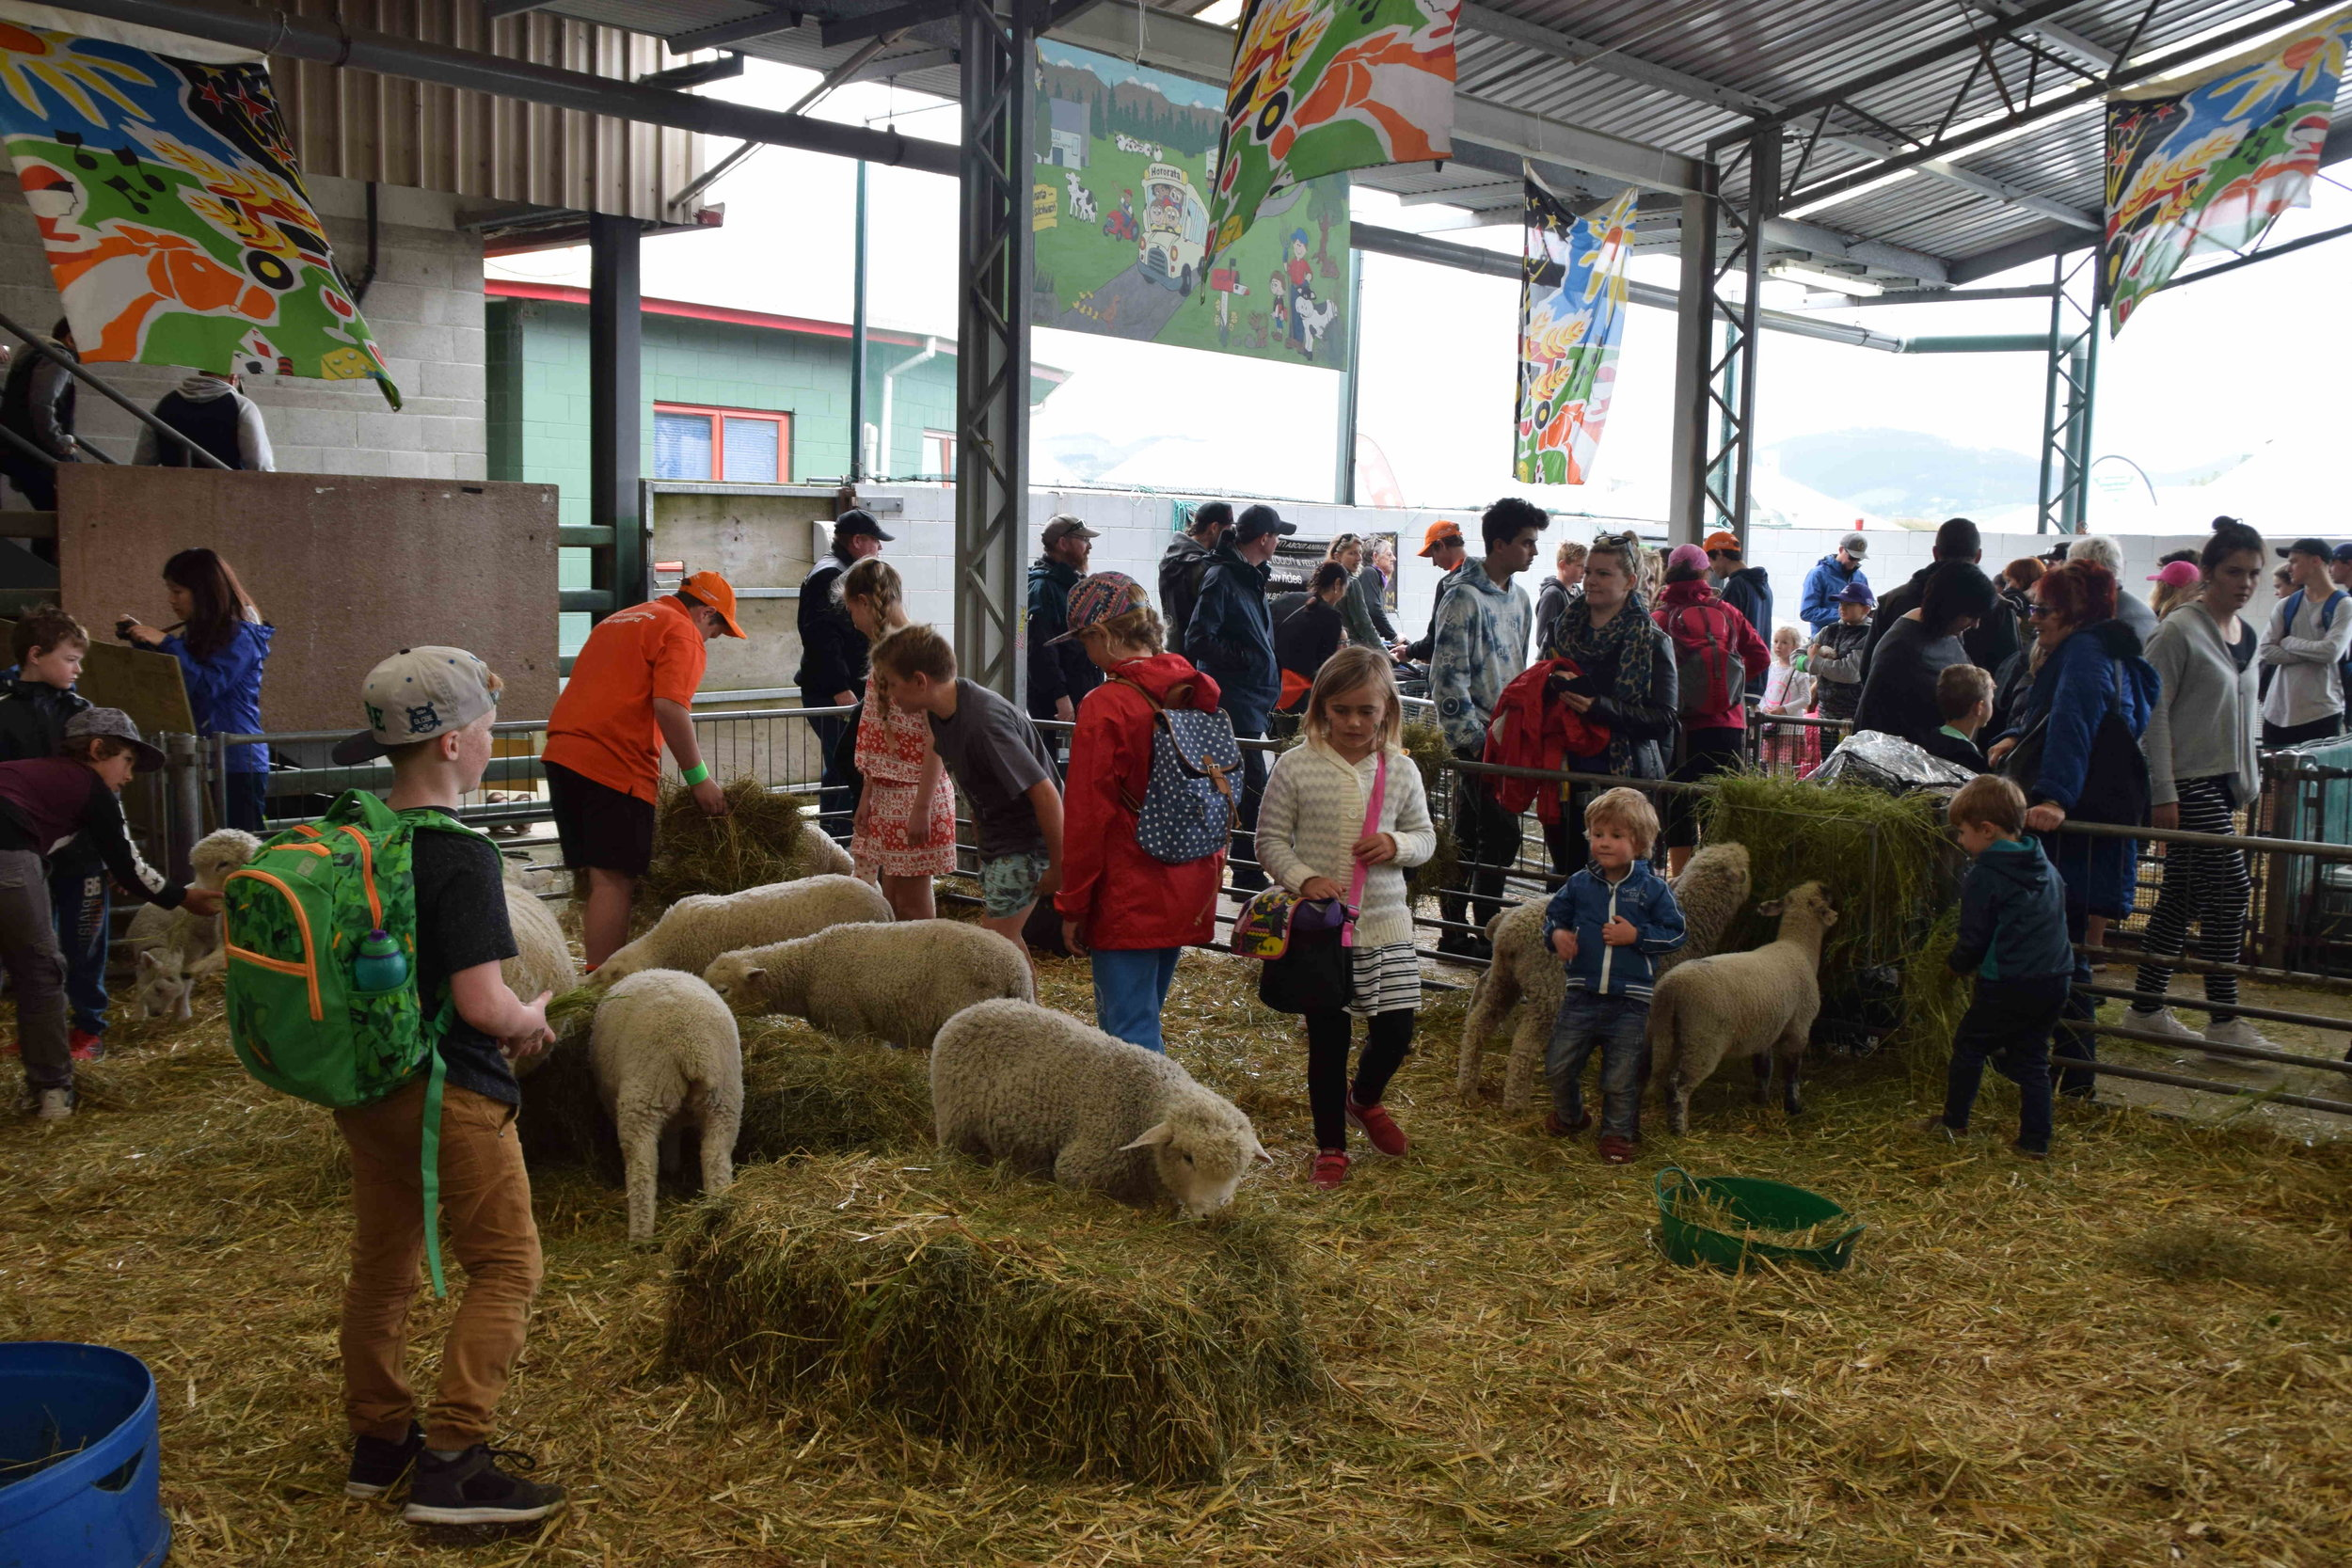 Sheep maternity ward was a special attraction for children visiting the A and P Show